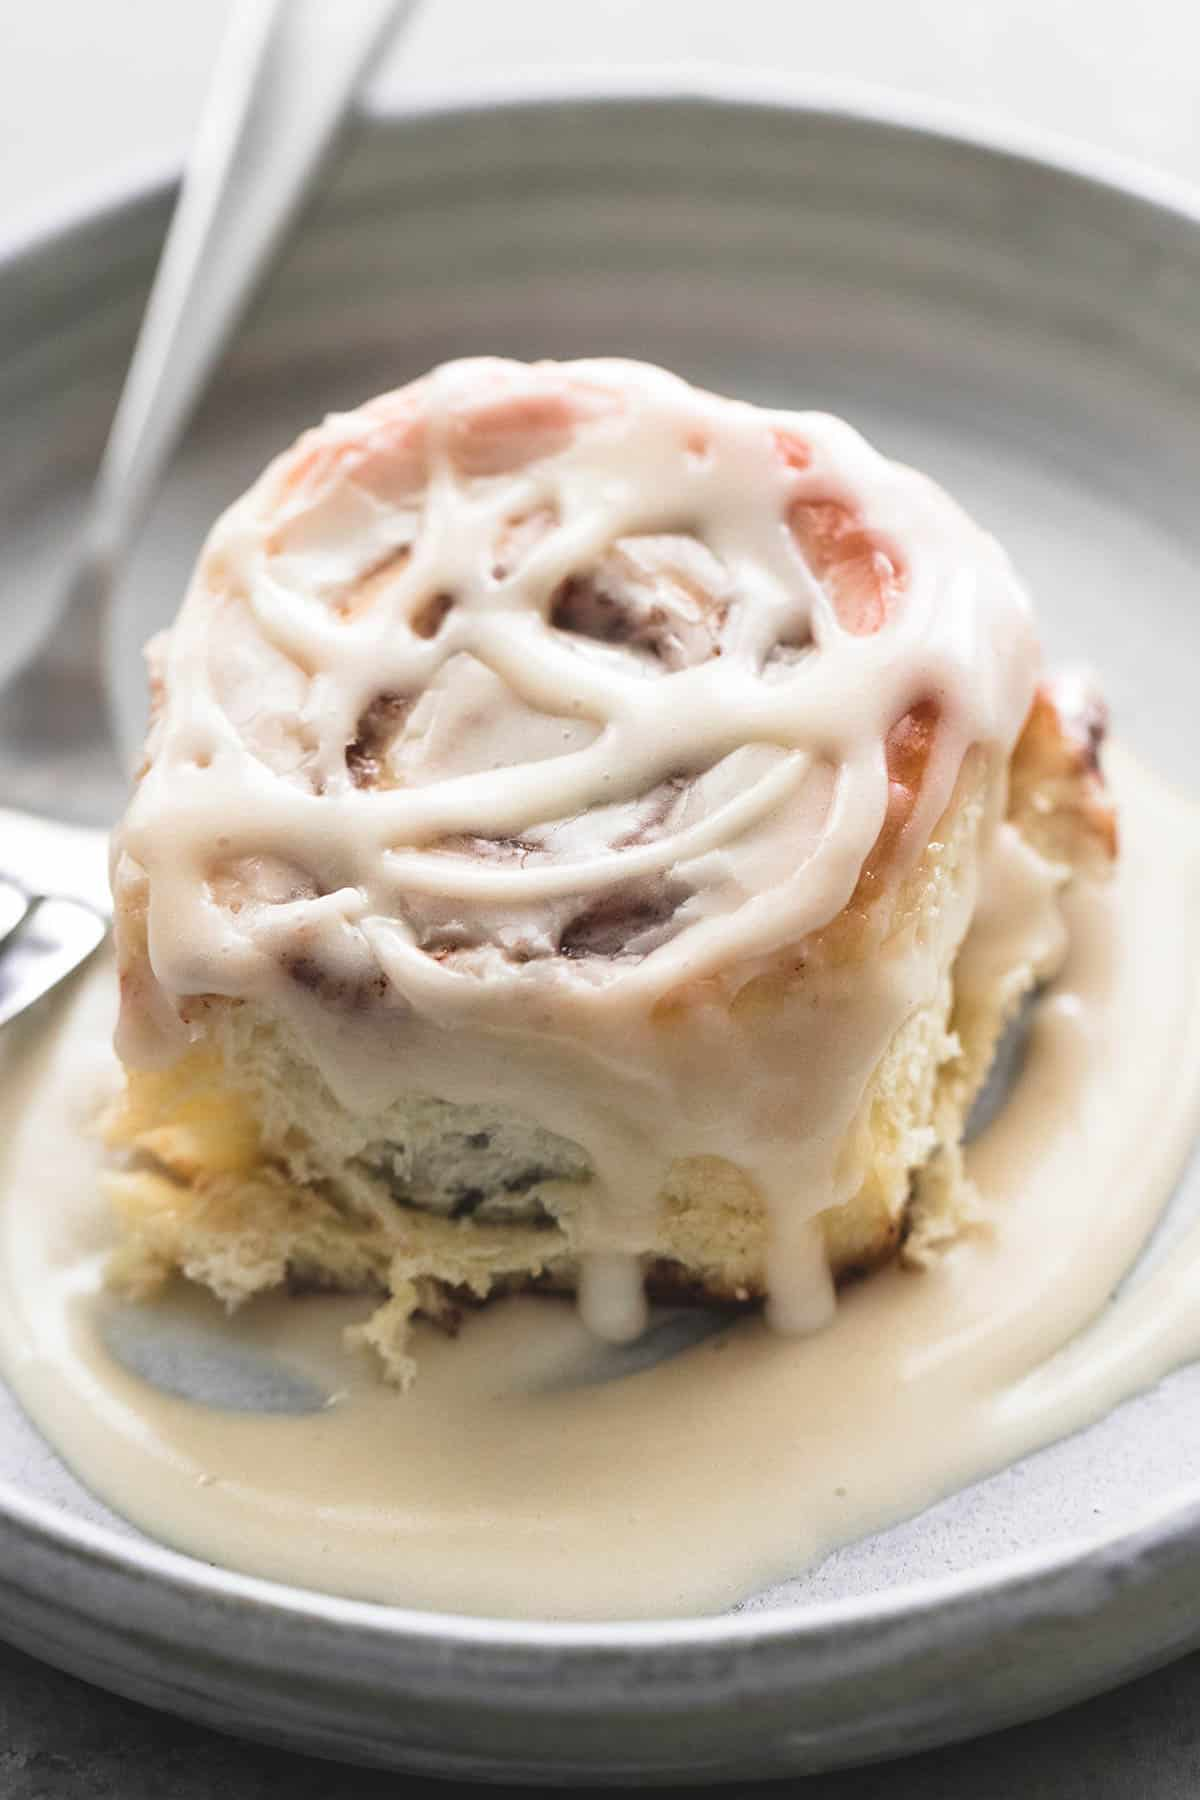 Best cream cheese frosting recipe for cinnamon rolls